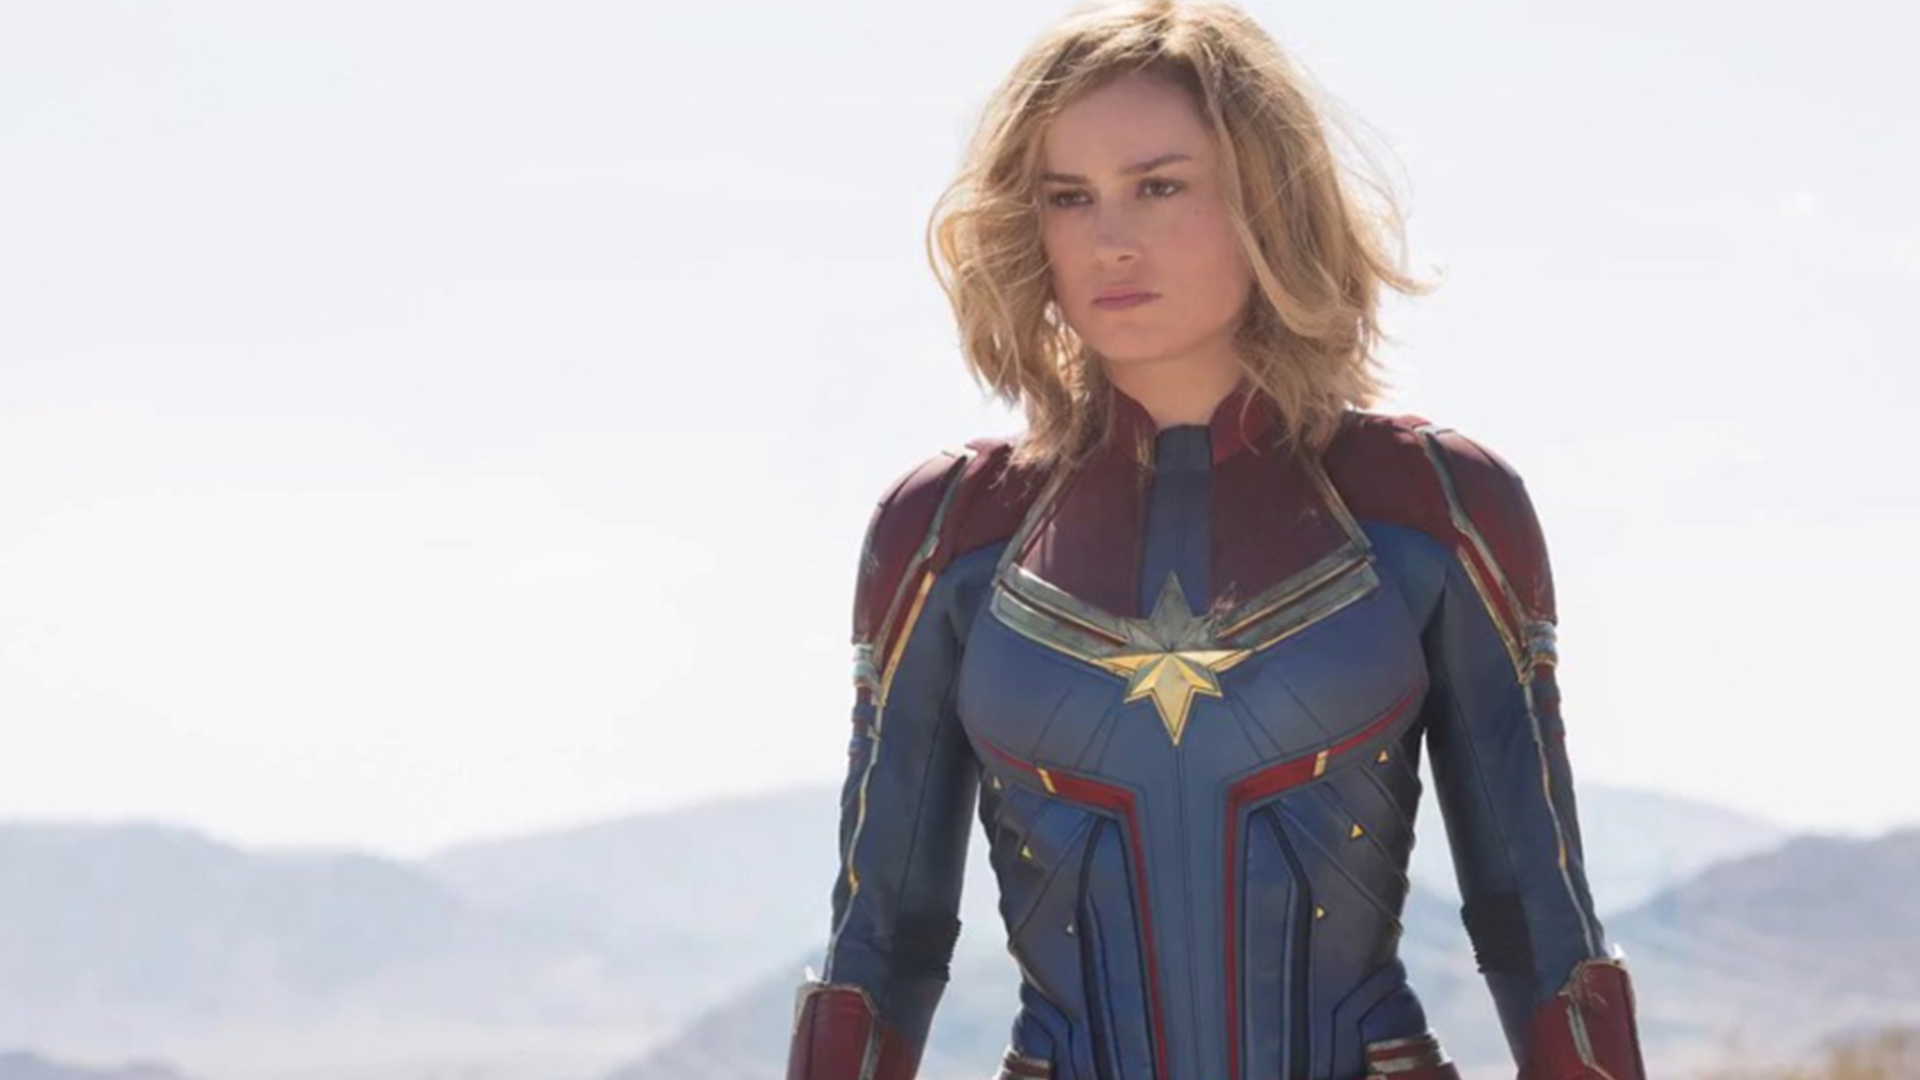 Kevin Feige says Marvel Studios planning more women superhero films